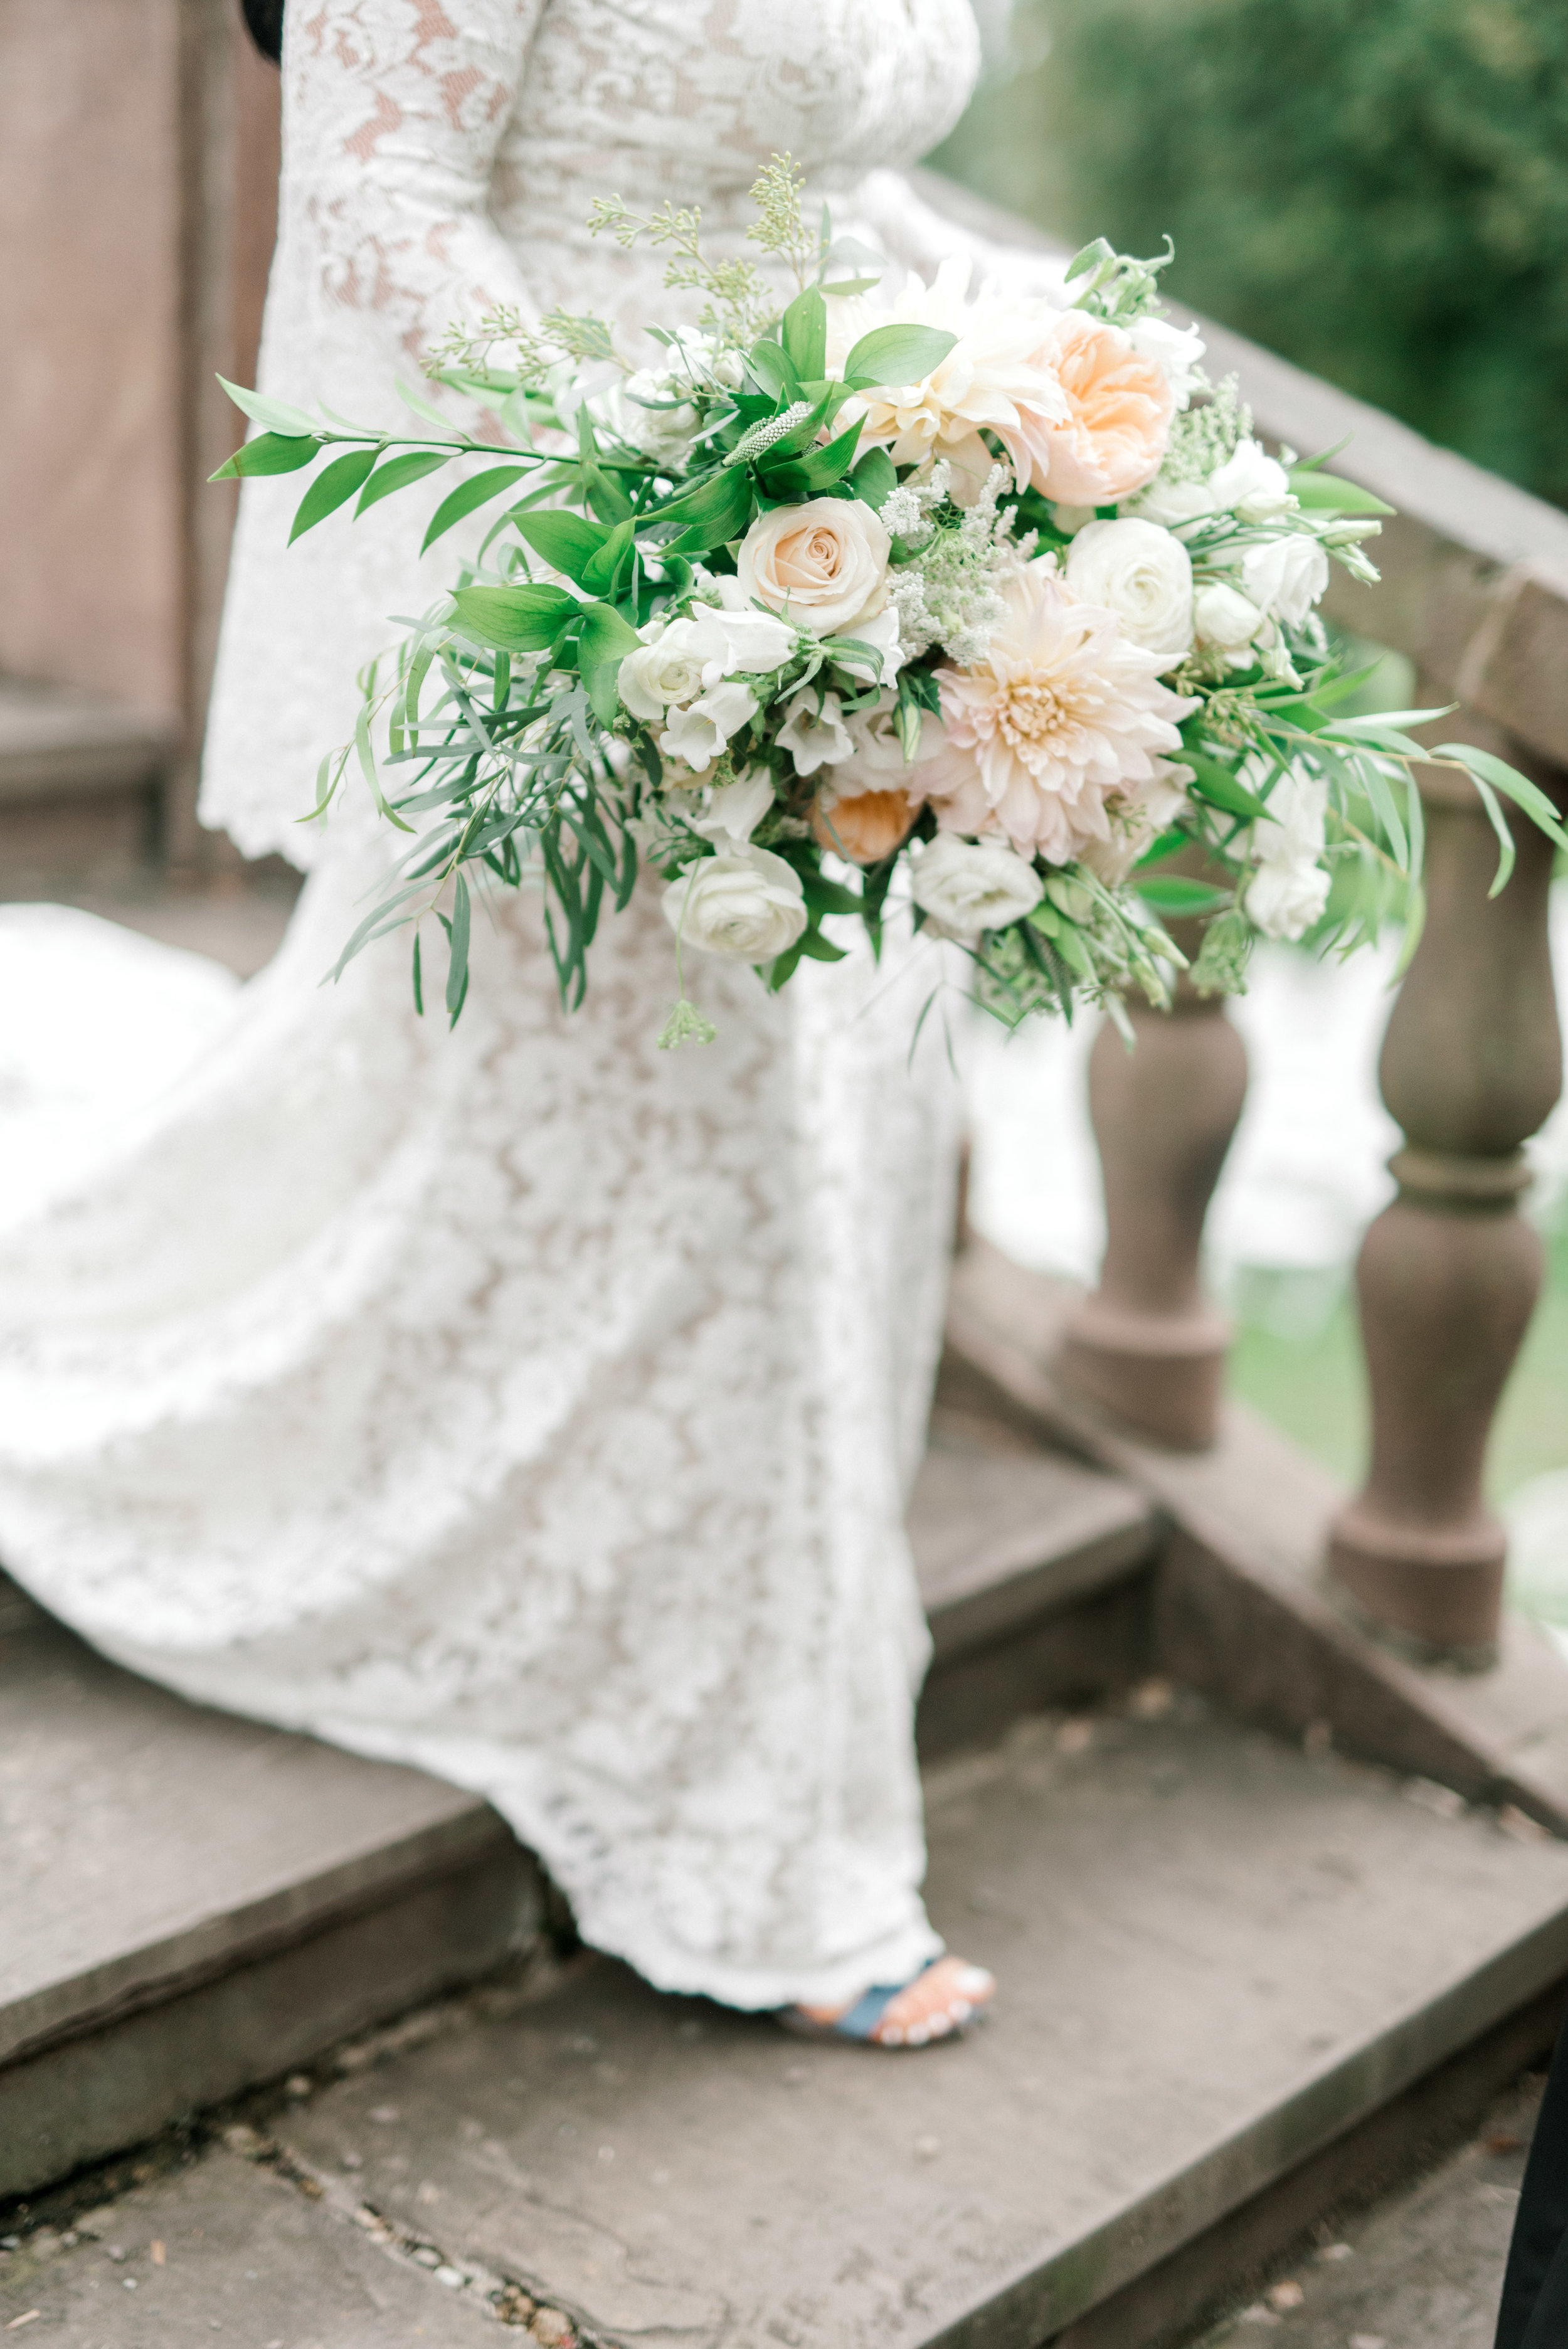 These white and blush blooms from Maura Rose Events are so romantic and went so perfectly with this bright boho chic Tyler Gardens wedding in Bucks County